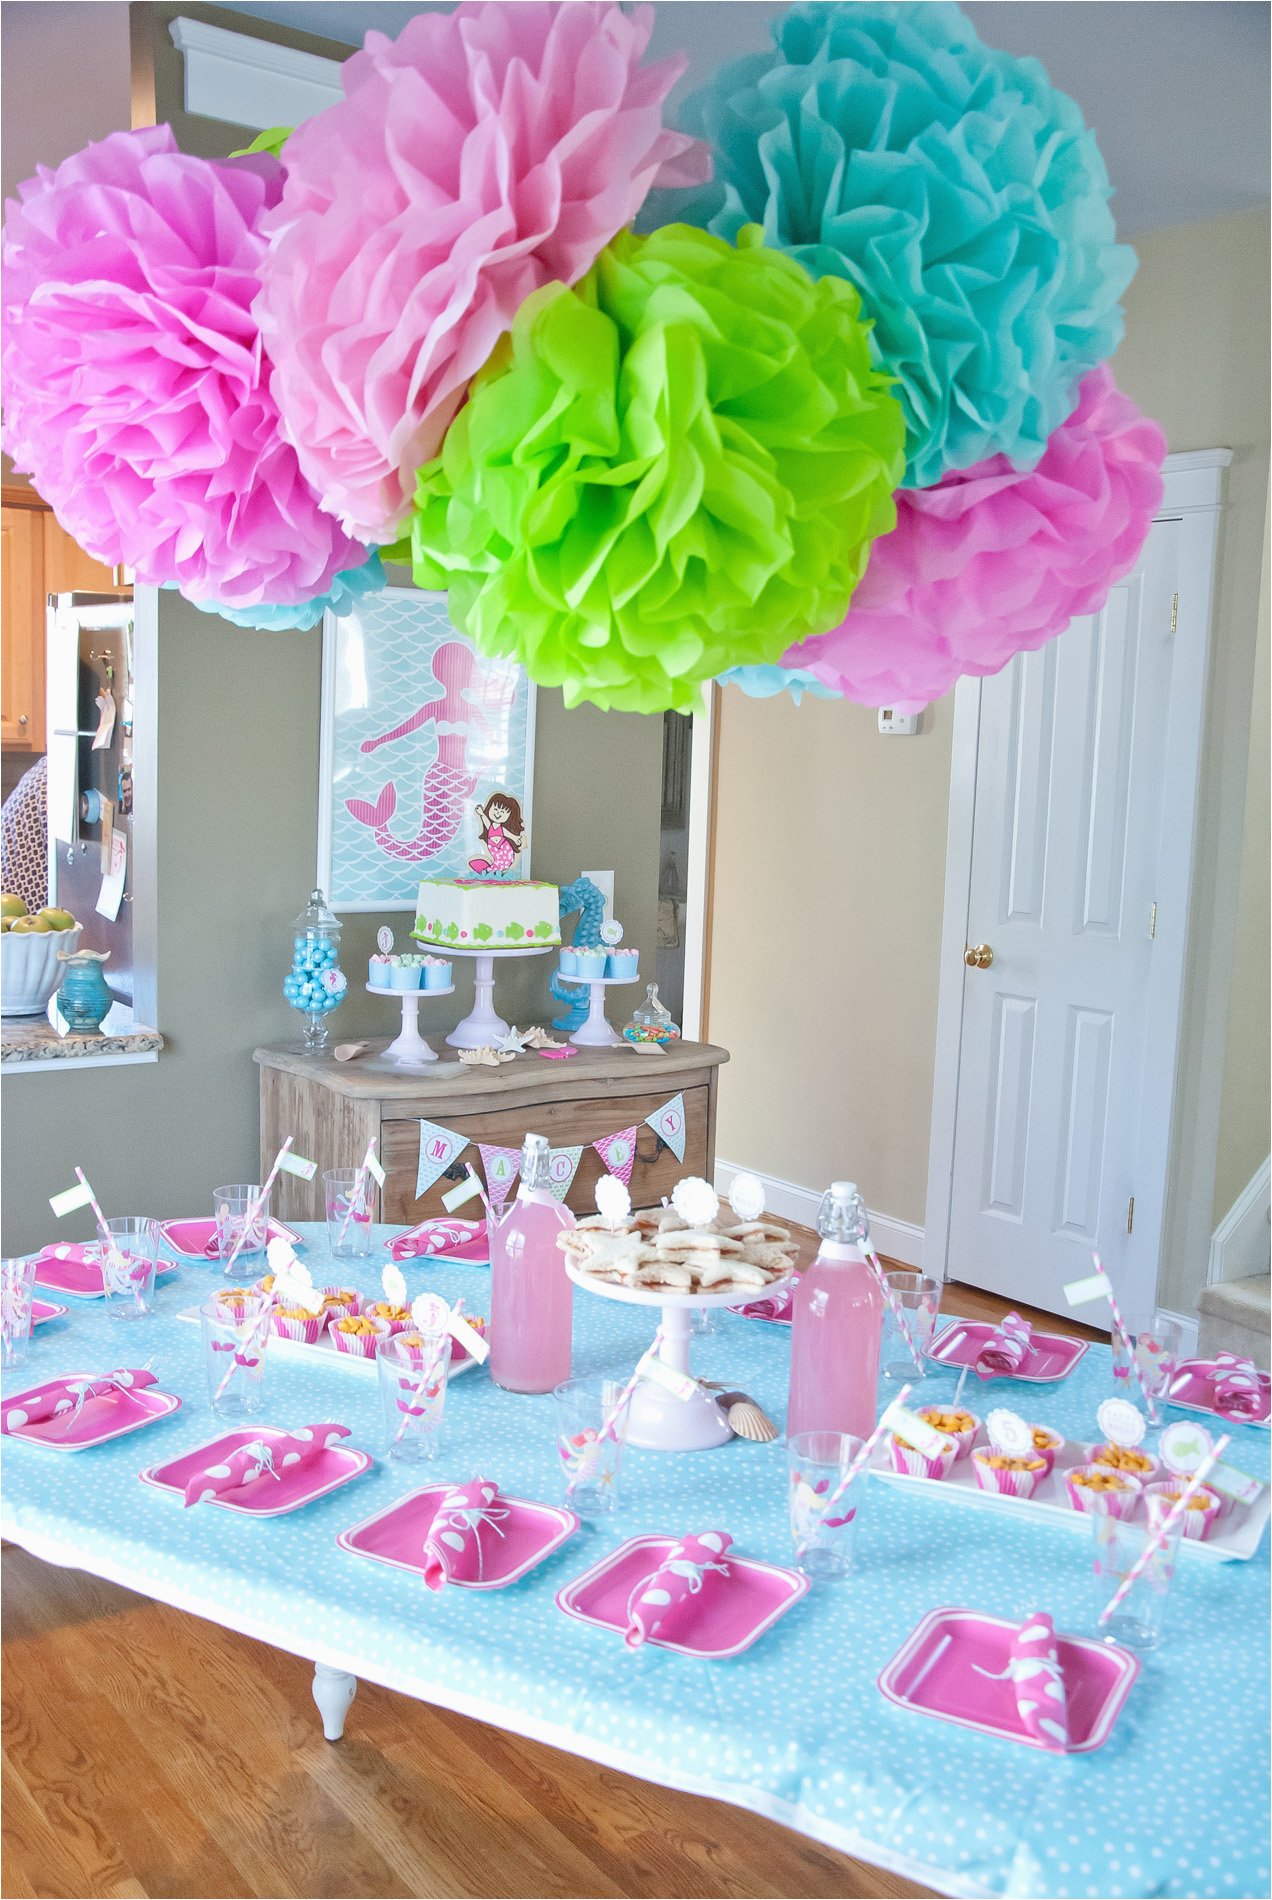 Table Decorations for Birthdays A Dreamy Mermaid Birthday Party anders Ruff Custom